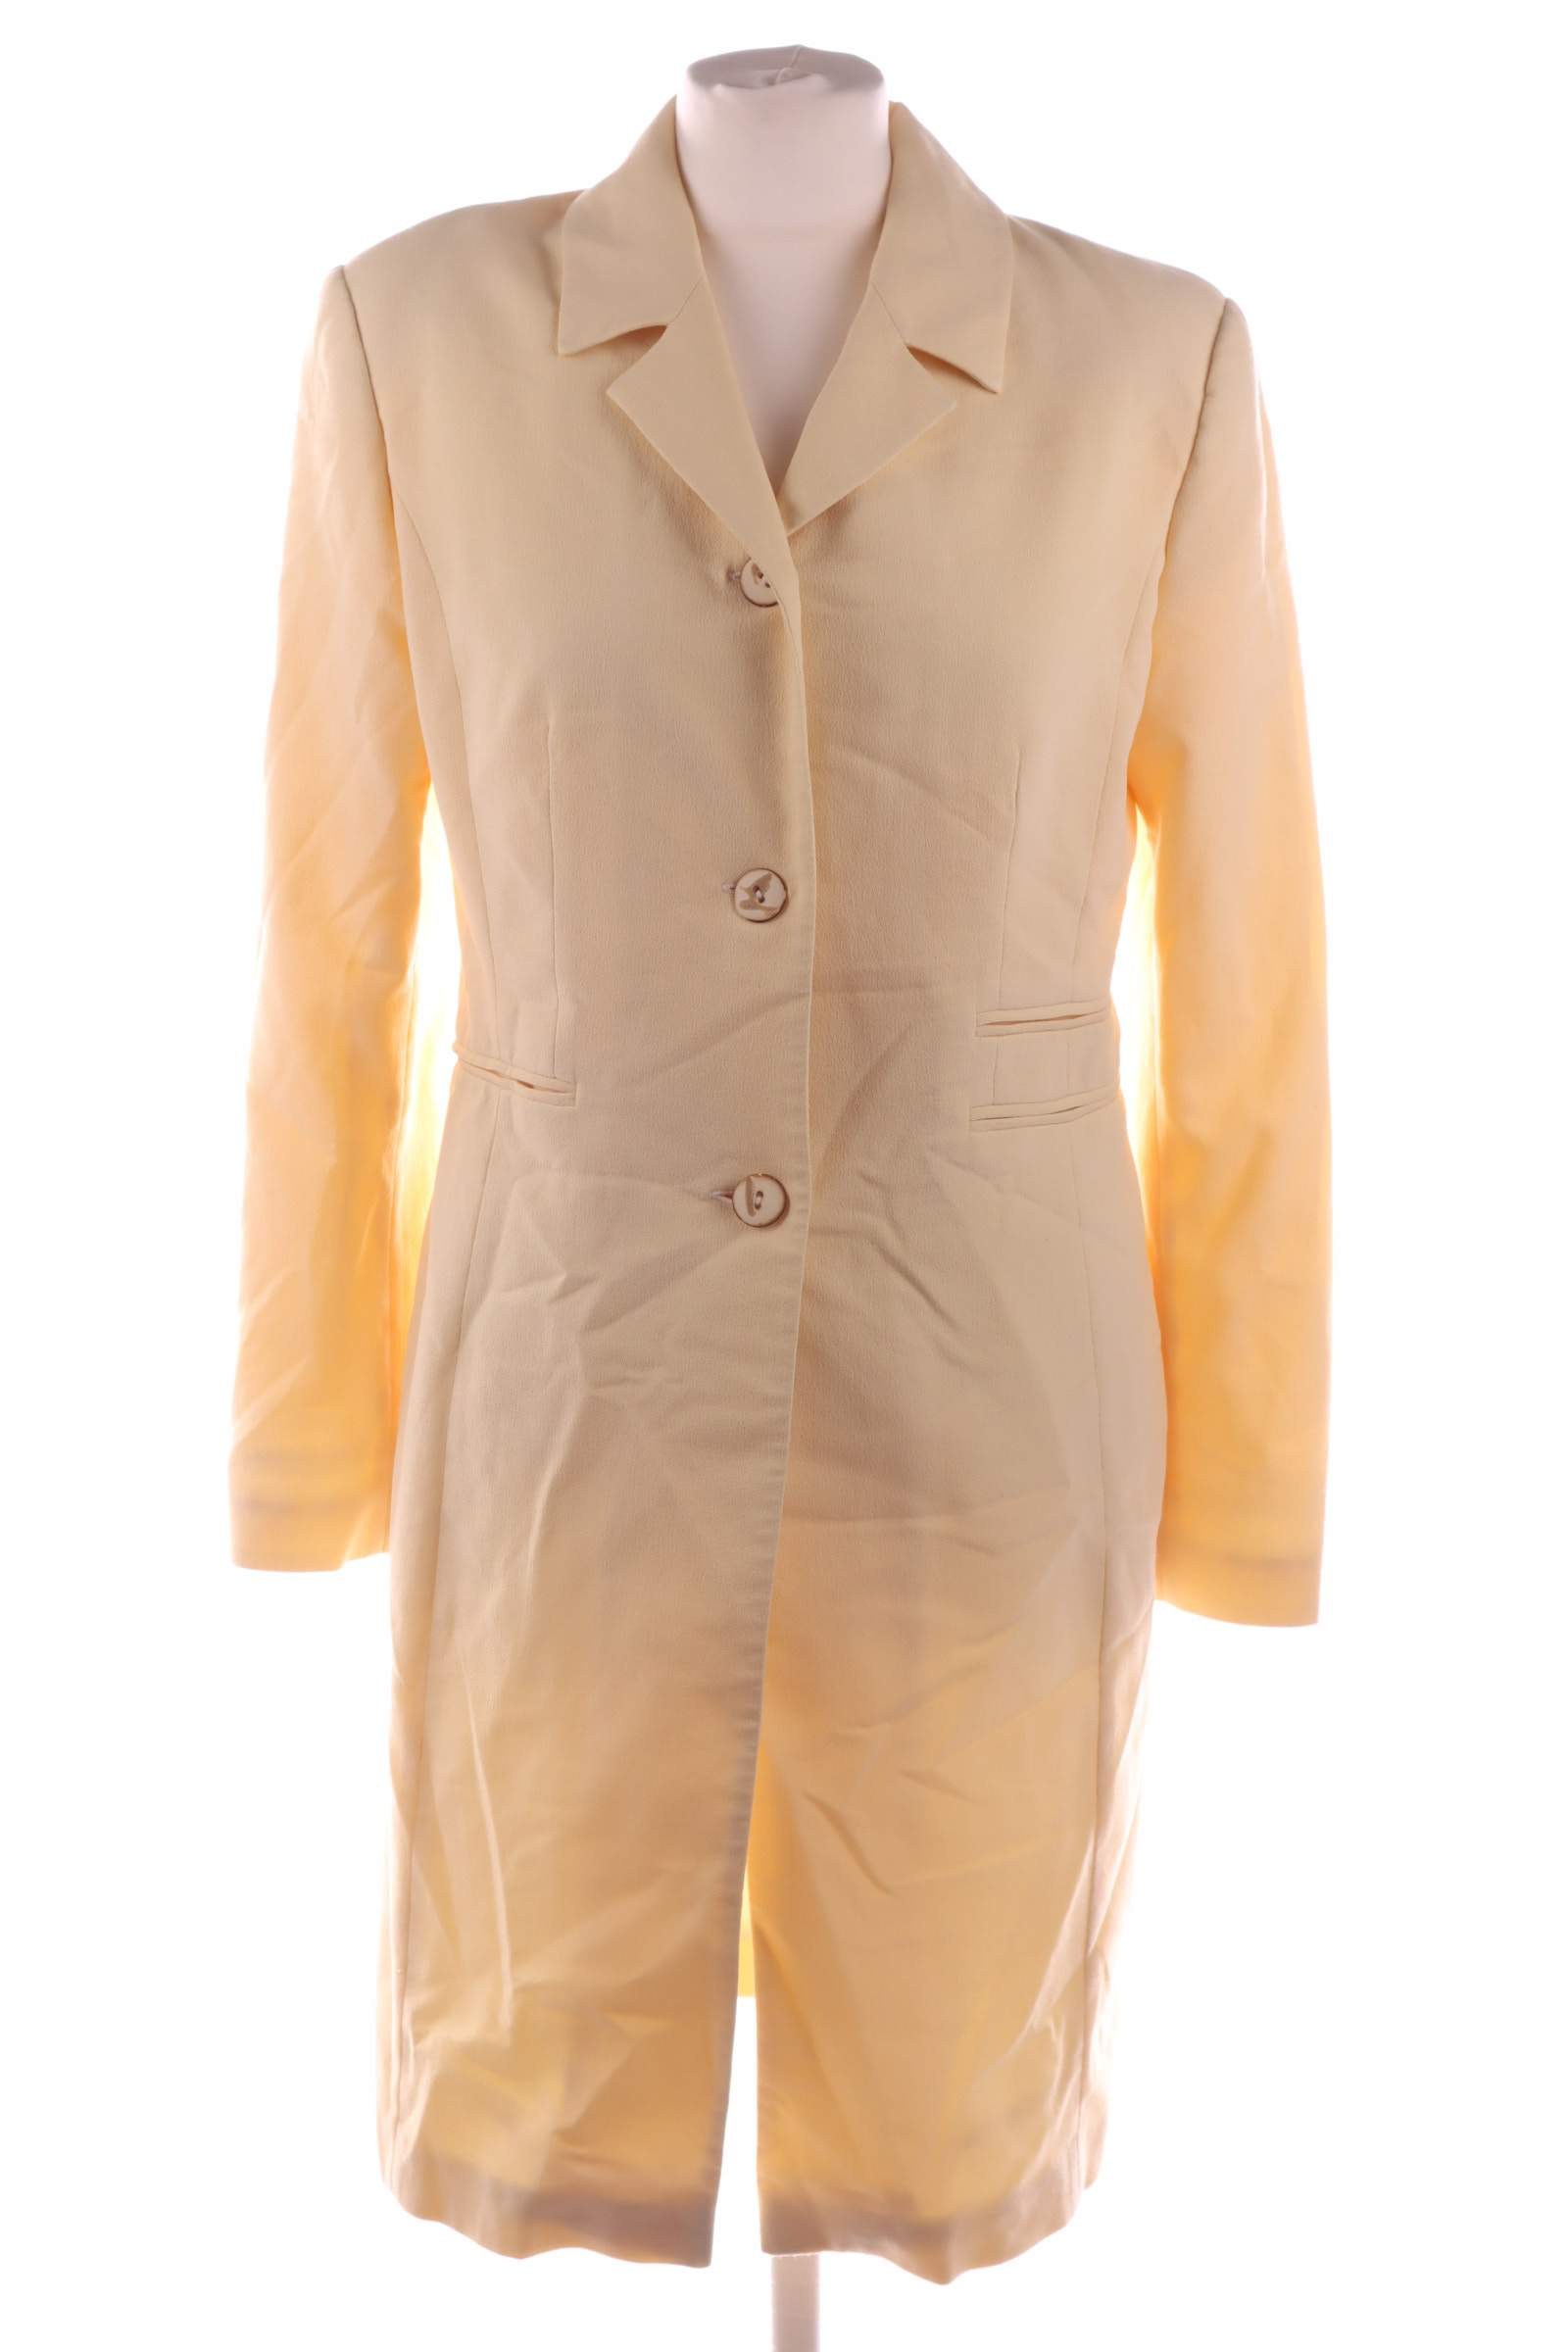 Althea Yellow Jacket - upty.store